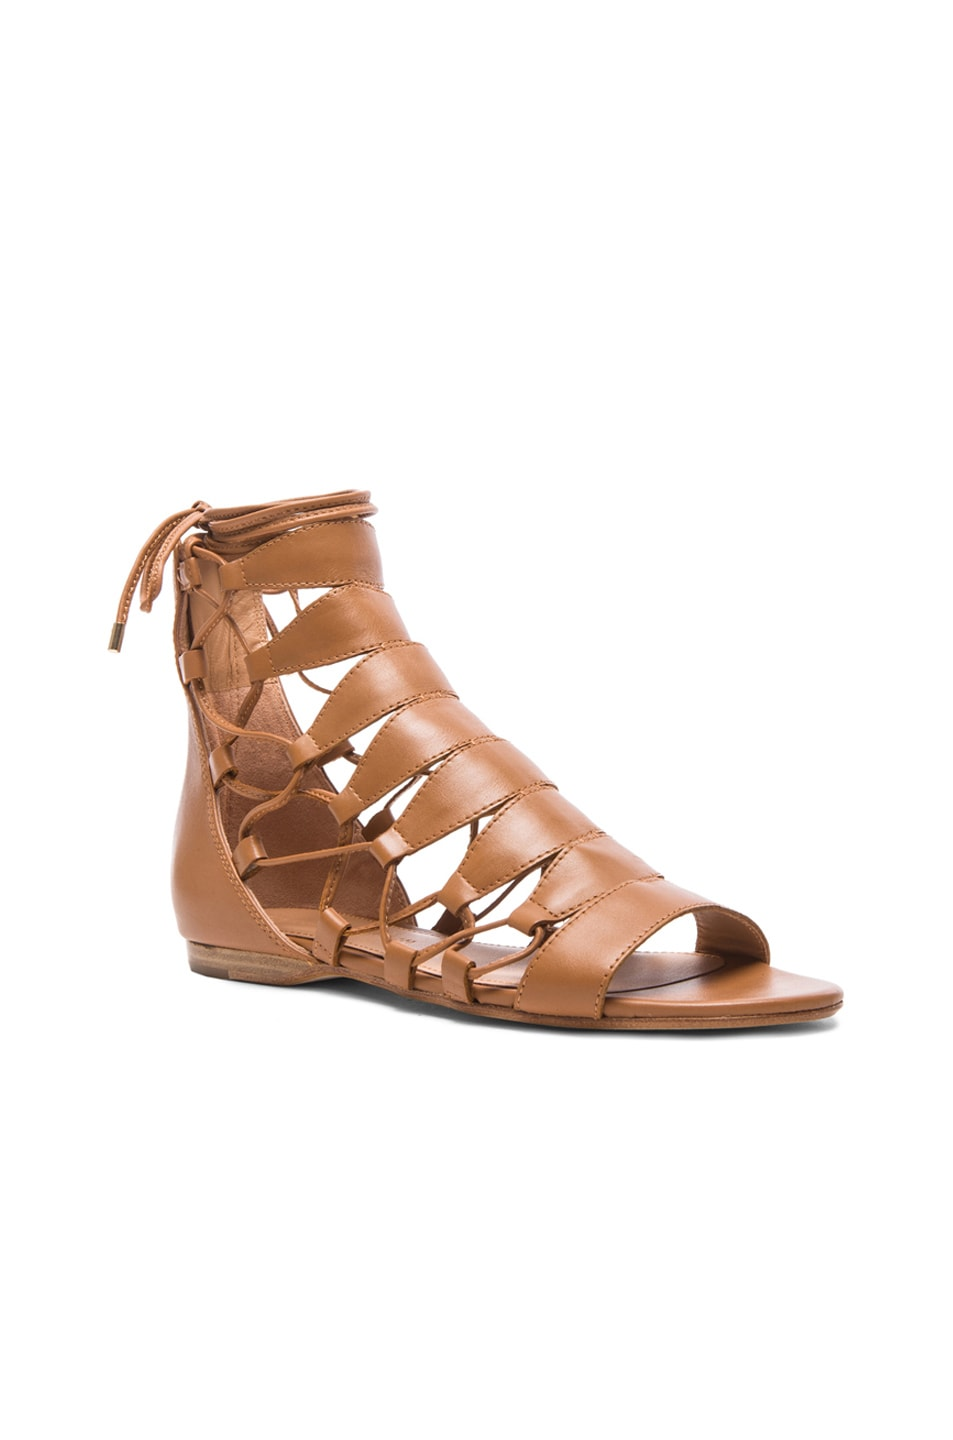 Image 2 of Sigerson Morrison Adal Lace Up Leather Sandals in Cuoio